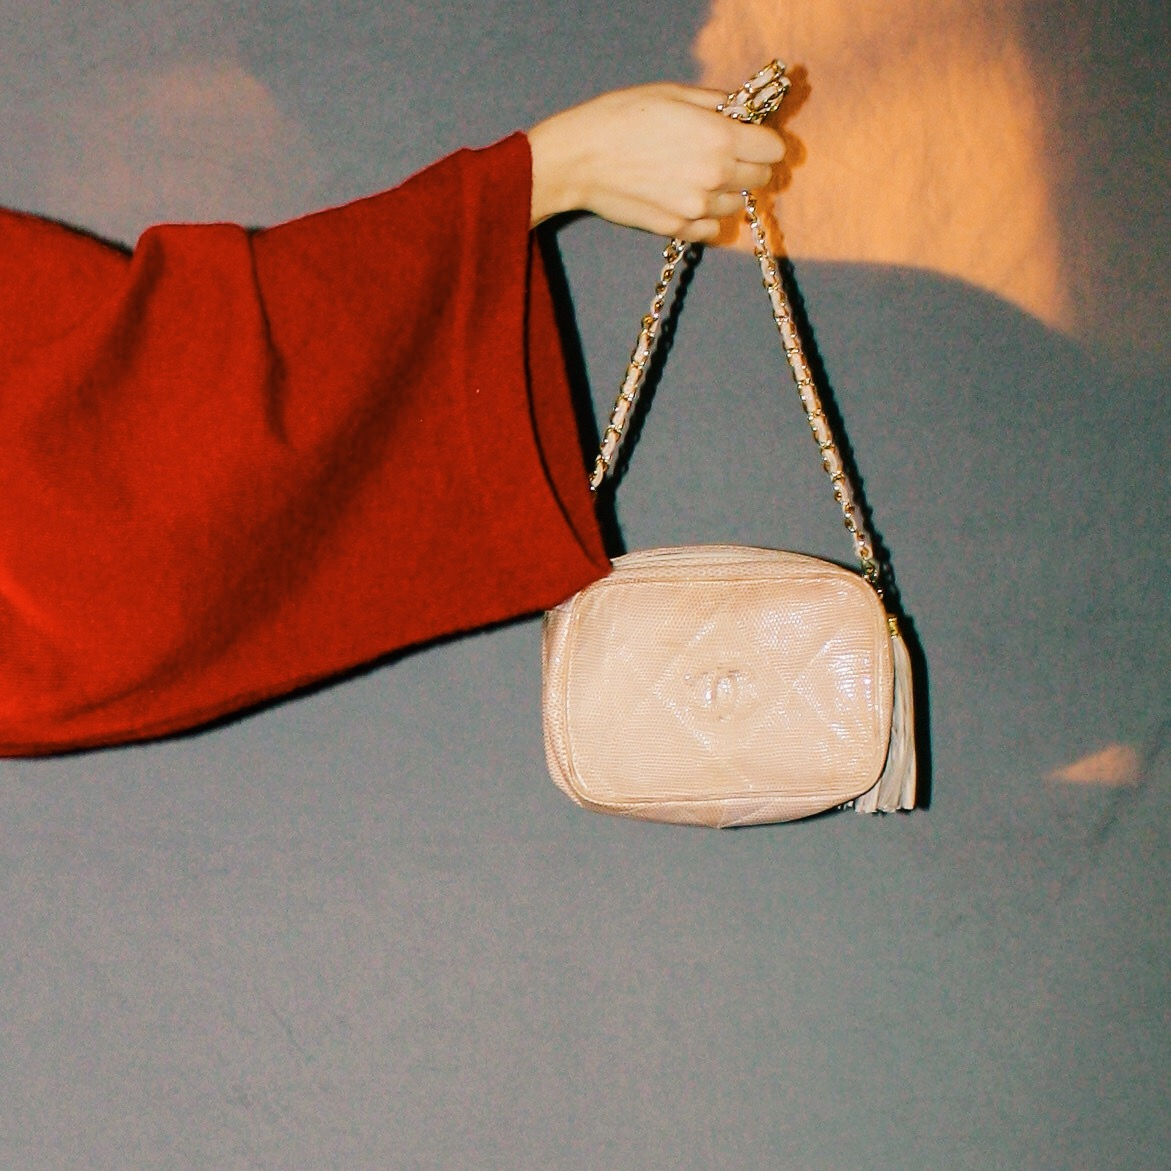 sweater dresses elizabeth and james red cashmere wool wild things sandal chanel kimono sleeve belt 4